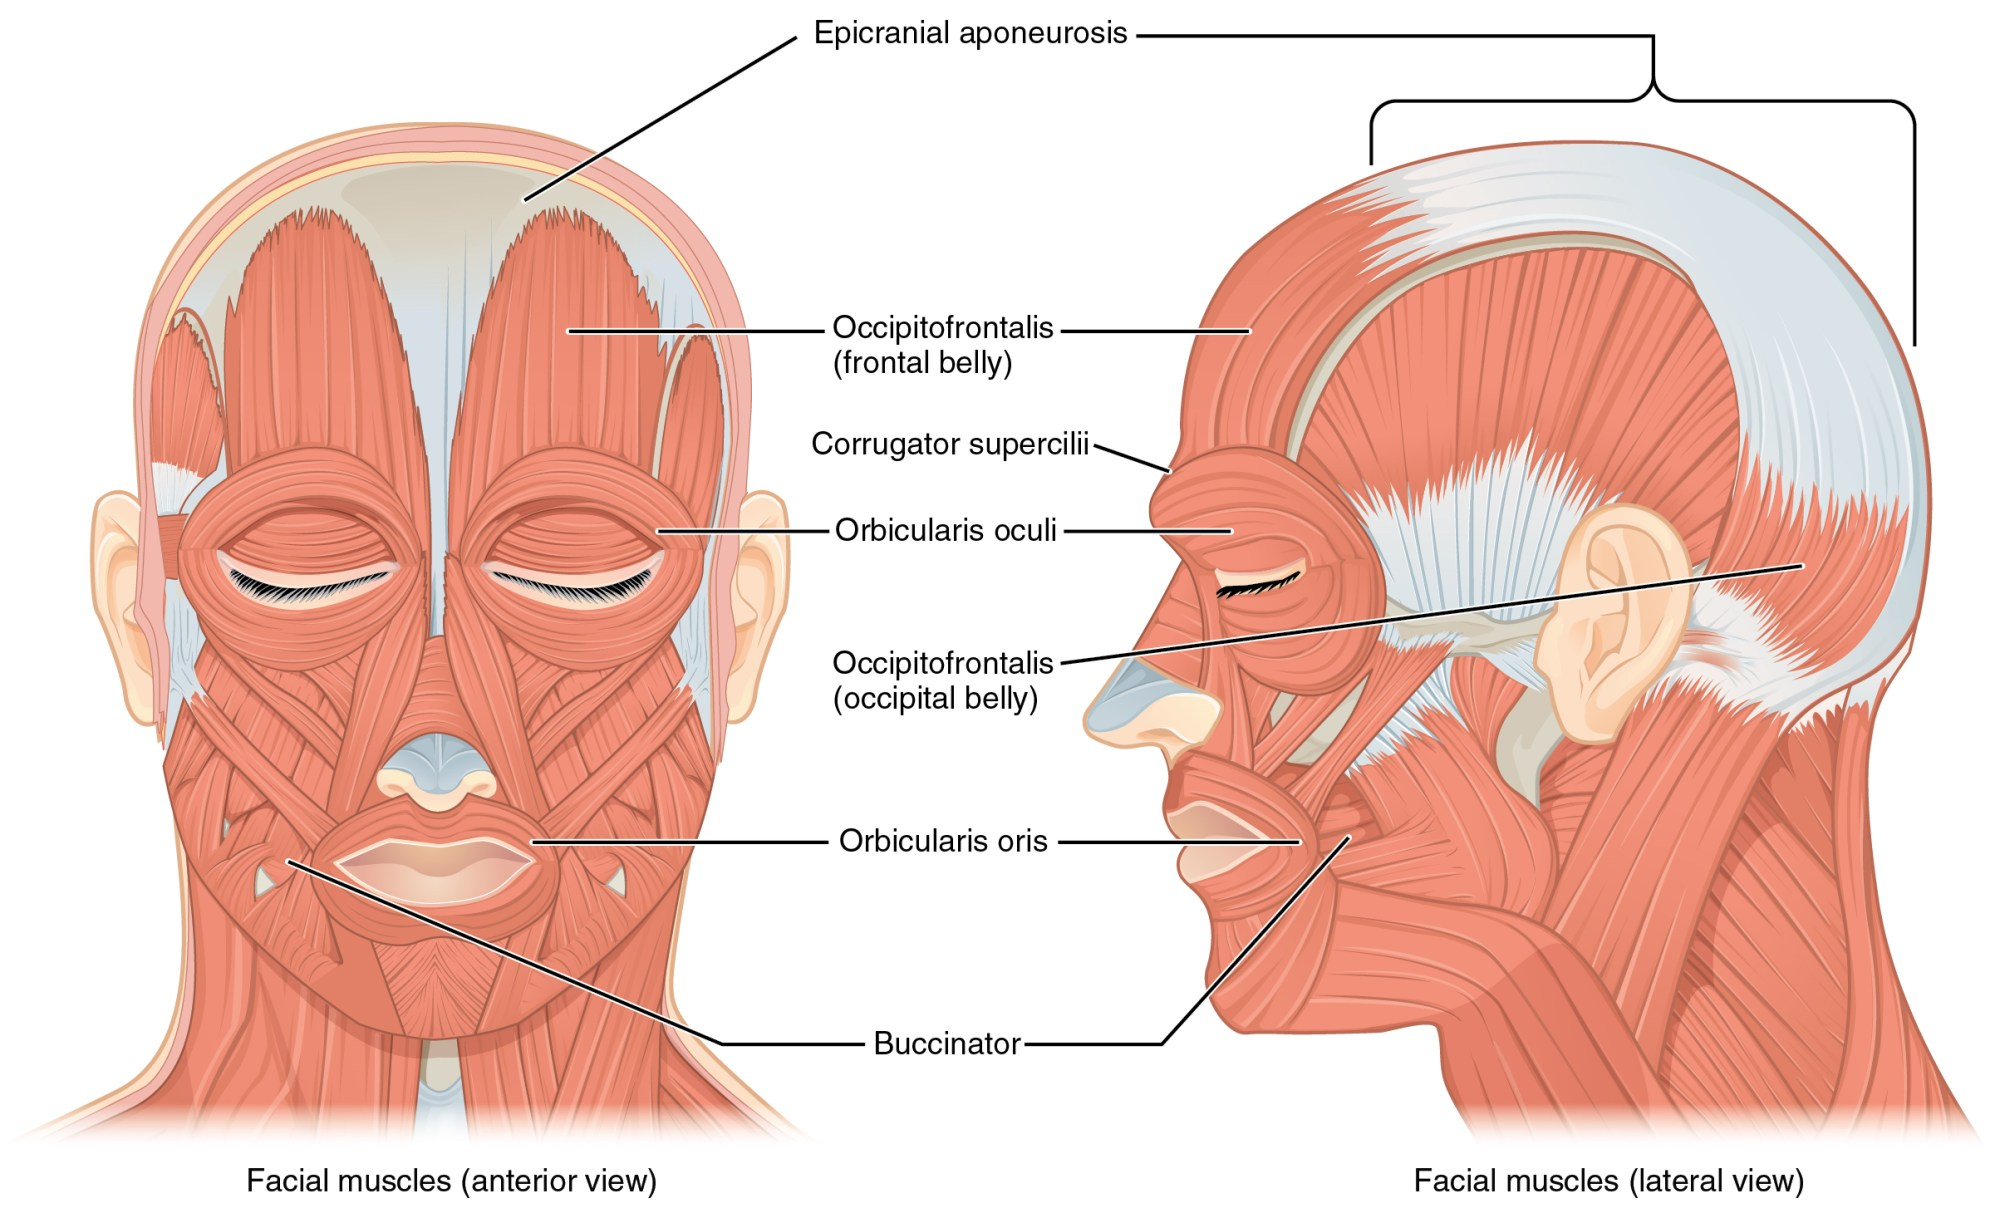 hight resolution of the left panel in this figure shows the anterior view of the facial muscles and